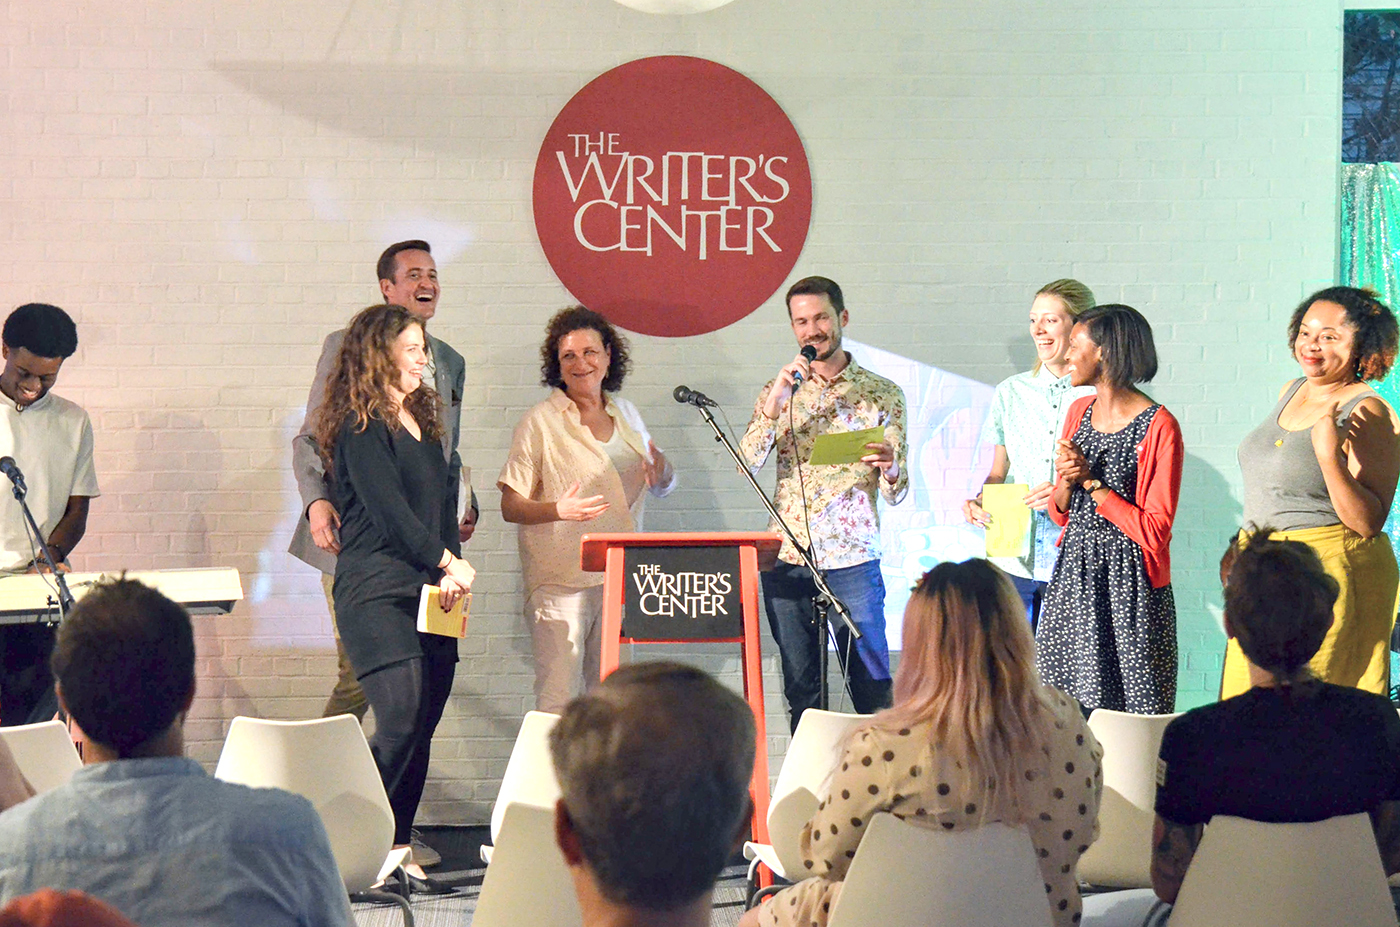 The Writer's Center LIVE!